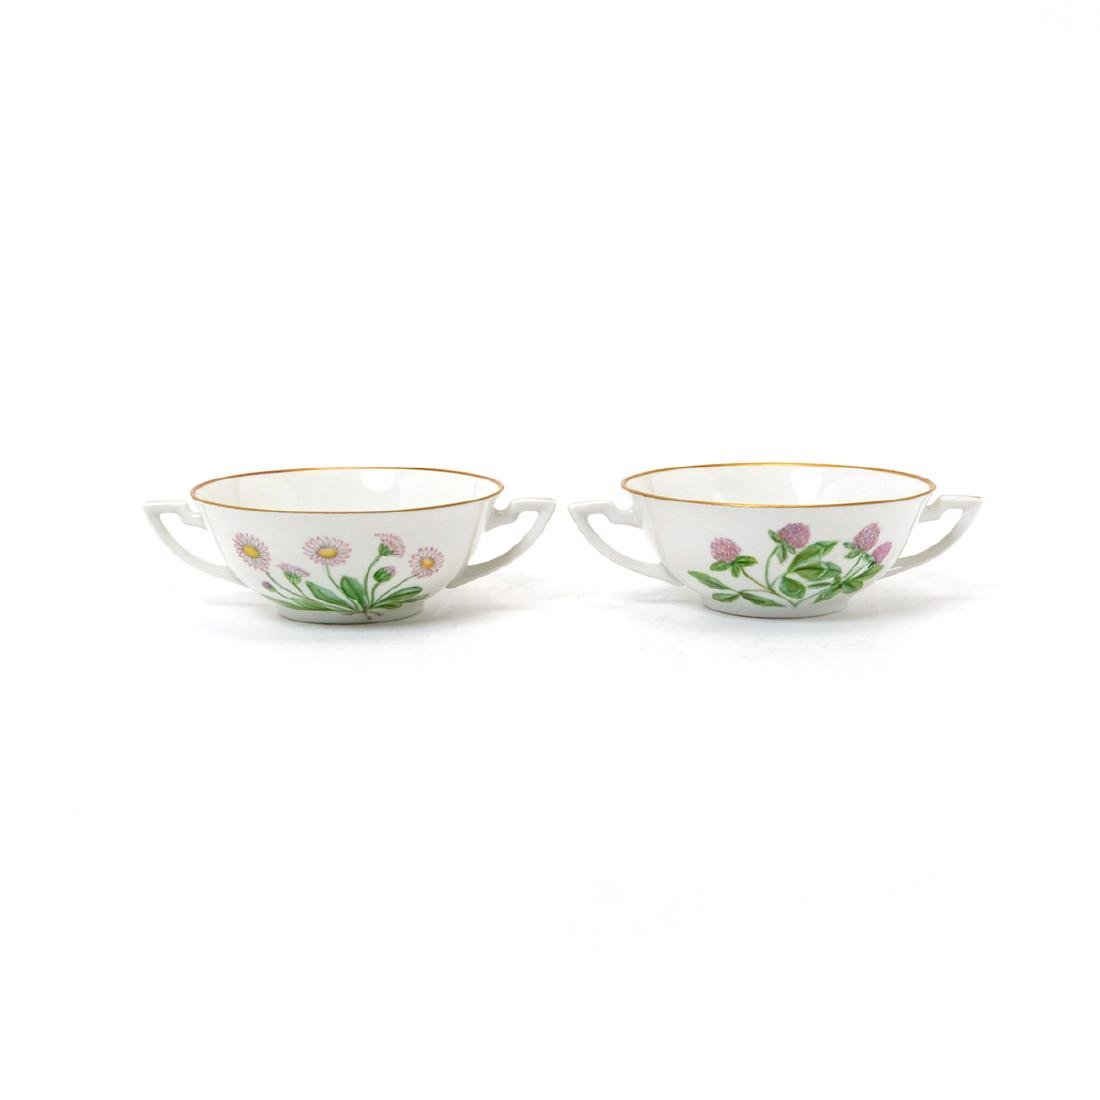 Royal Copenhagen Porcelain Serving and Table Articles - 5